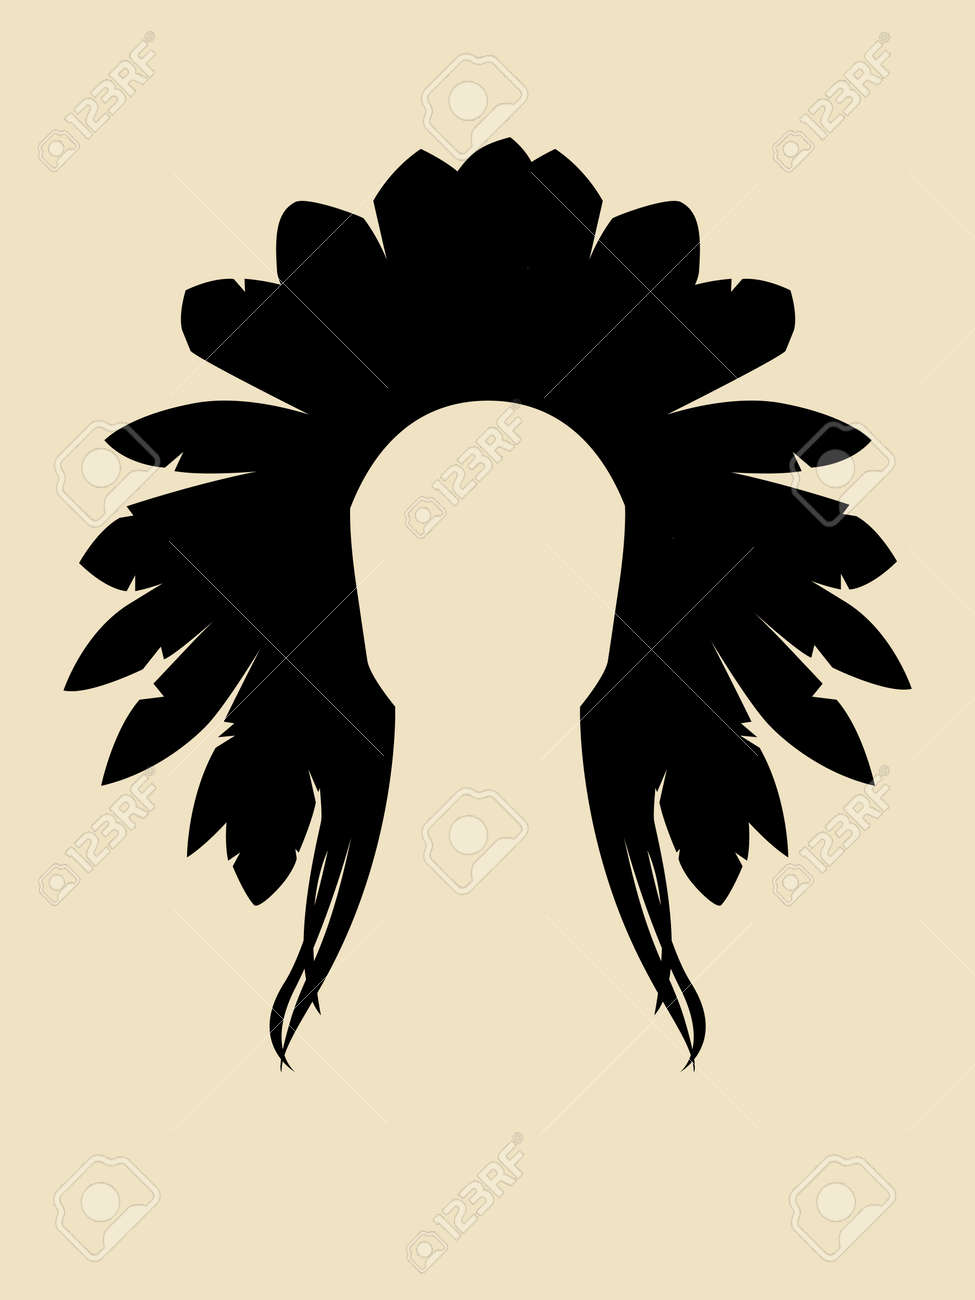 Face Symbol Of North American Indian Chieftain Royalty Free Cliparts